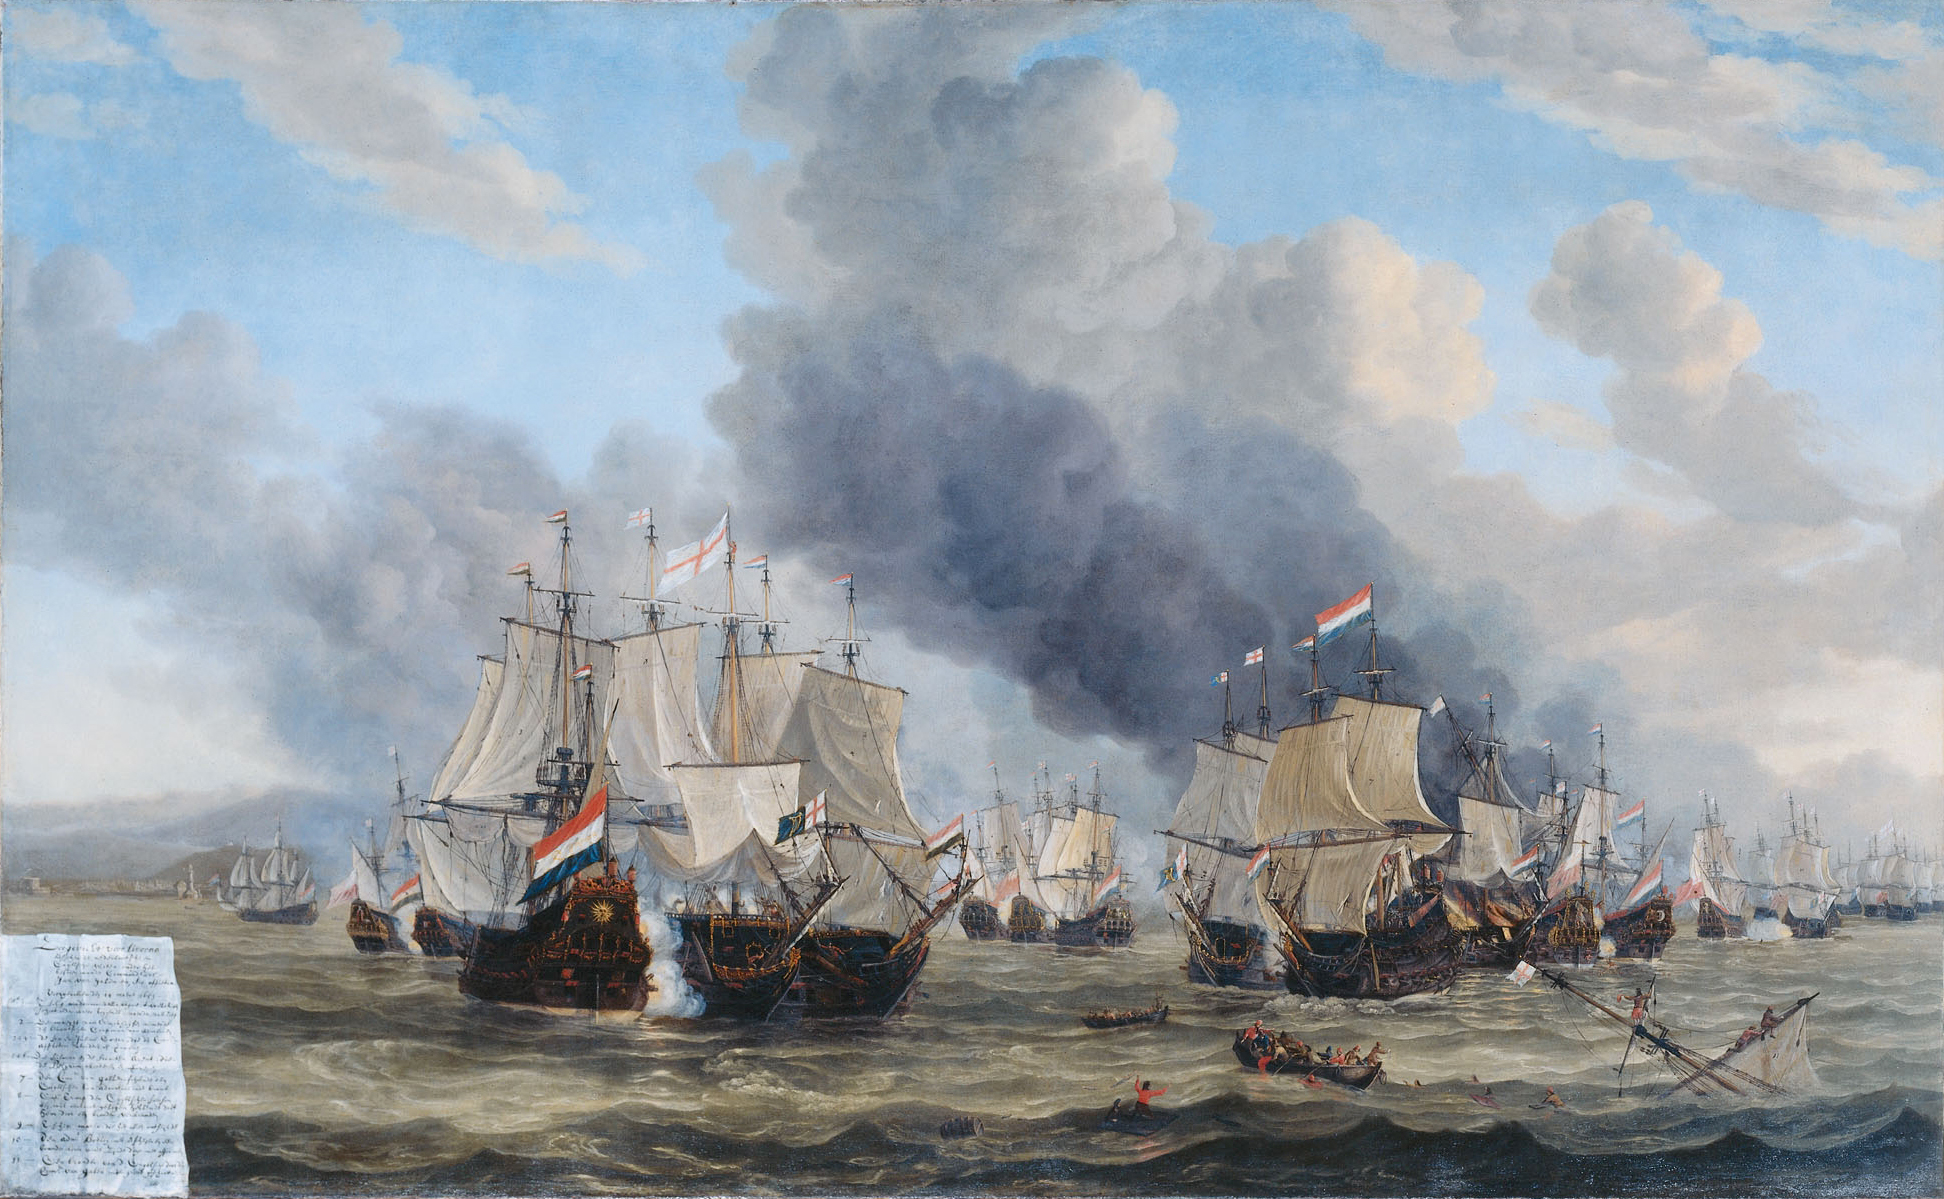 battle-of-livorno-reinier-nooms-de-zeesl